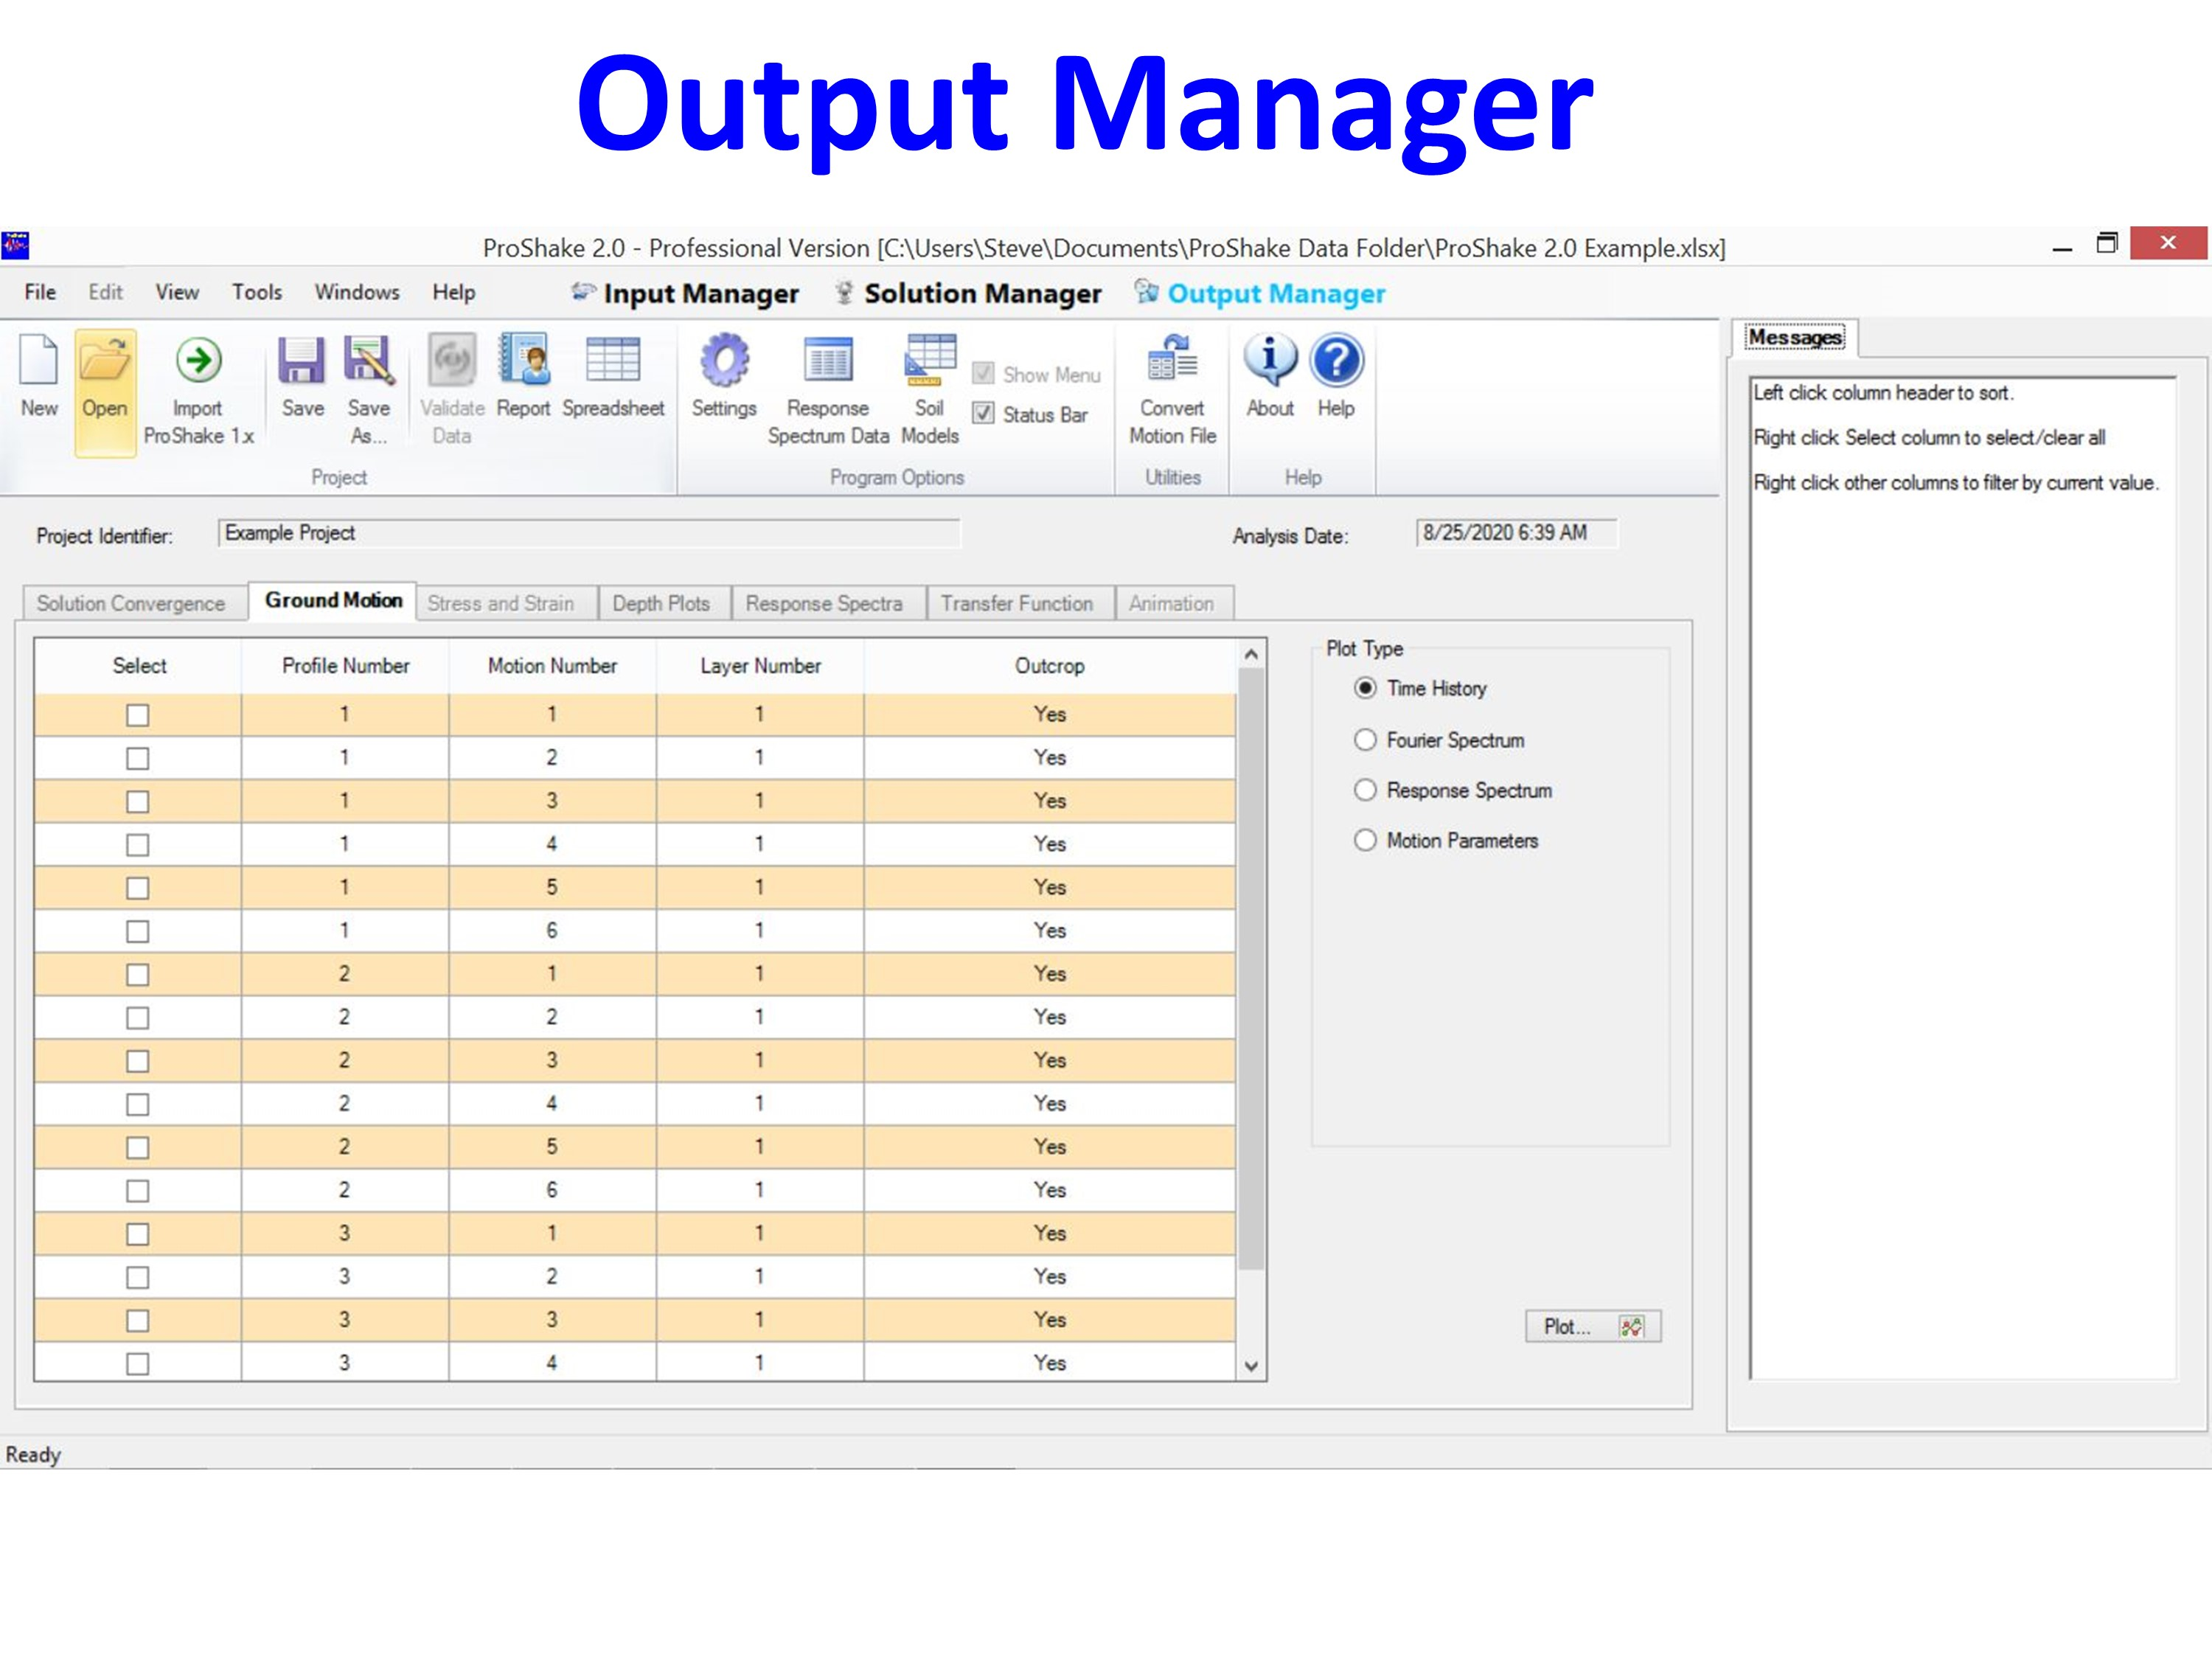 Output Manager